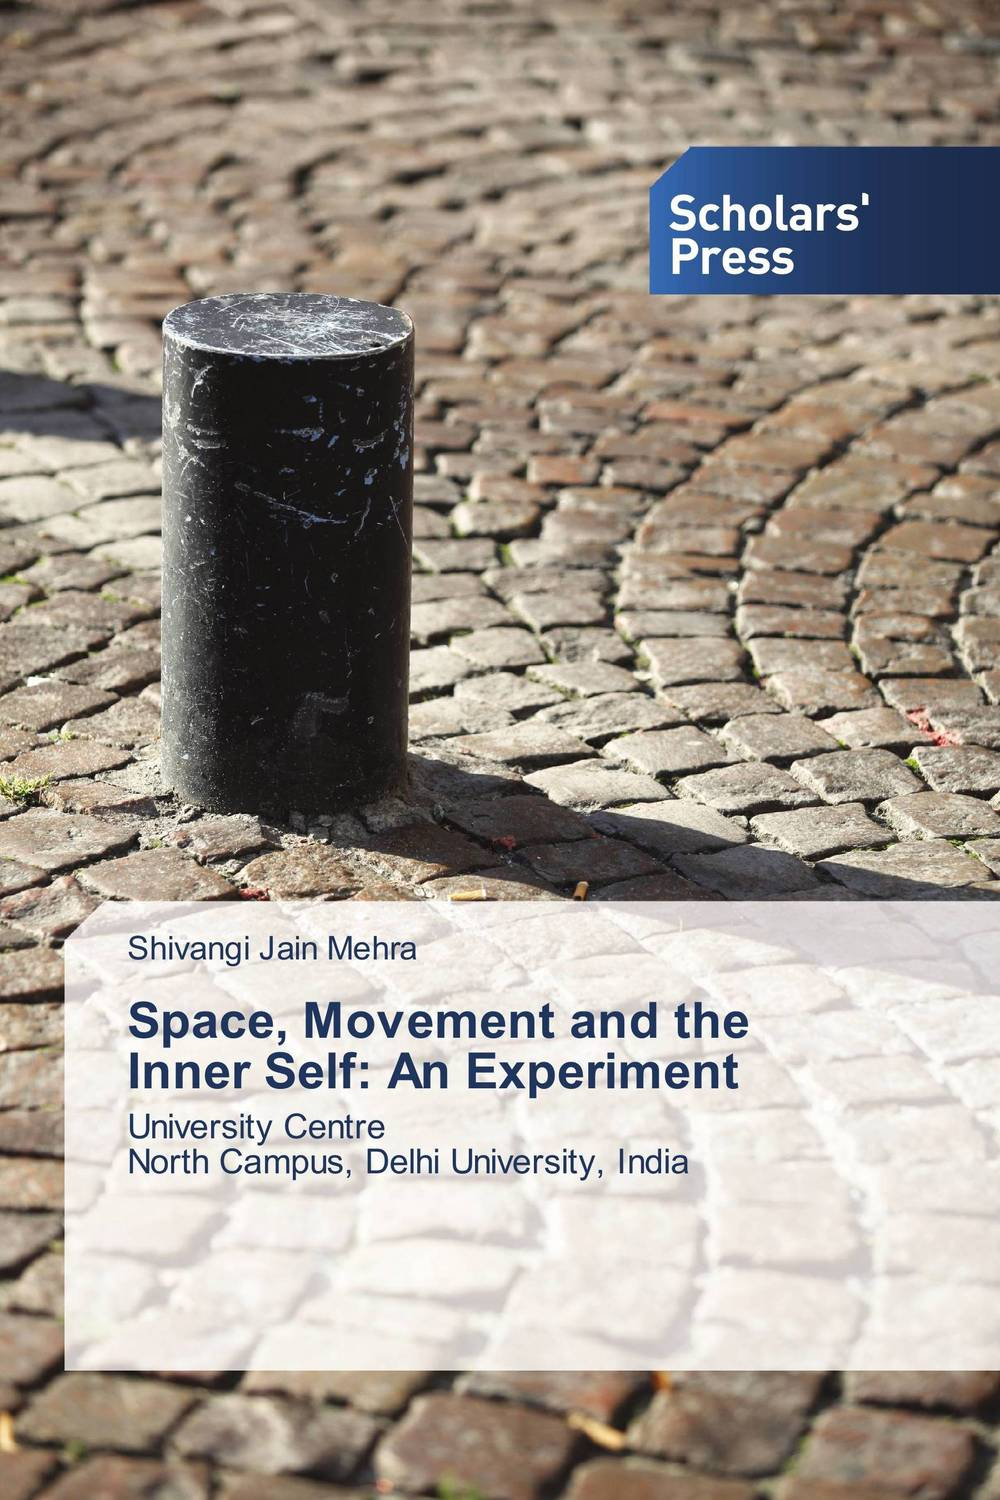 Space, Movement and the Inner Self: An Experiment verne j journey to the centre of the earth книга для чтения